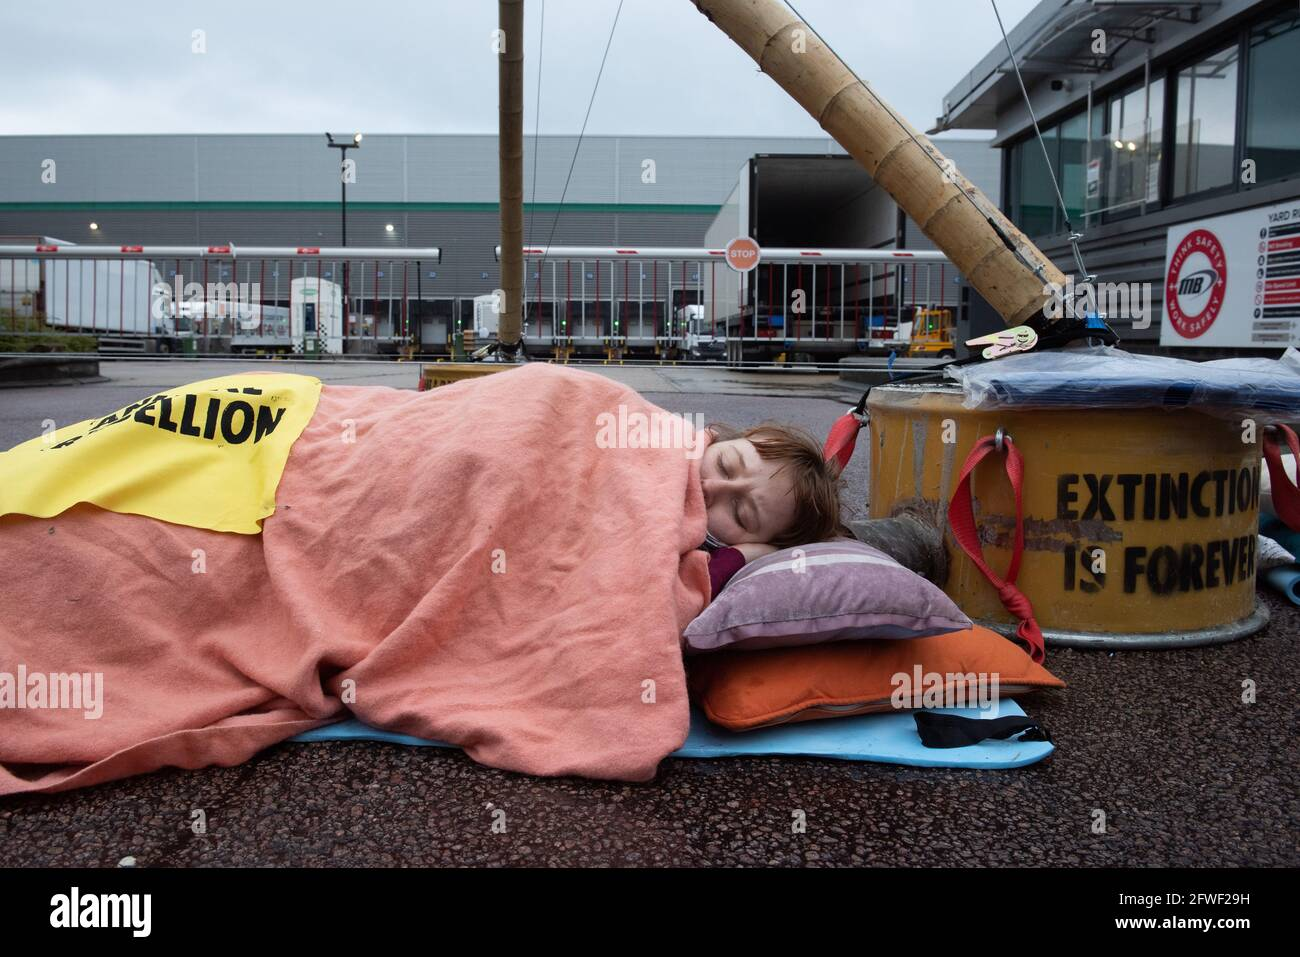 Hemel Hempstead, UK. 22.05.21 - Animal Rights activists blocked all 4 of McDonalds UK distribution centres. They view McDonalds as a symbol of industrial animal agriculture which contributes to the climate crisis as well as causing suffering to animals. Credit: Gareth Morris/Alamy Live News Stock Photo